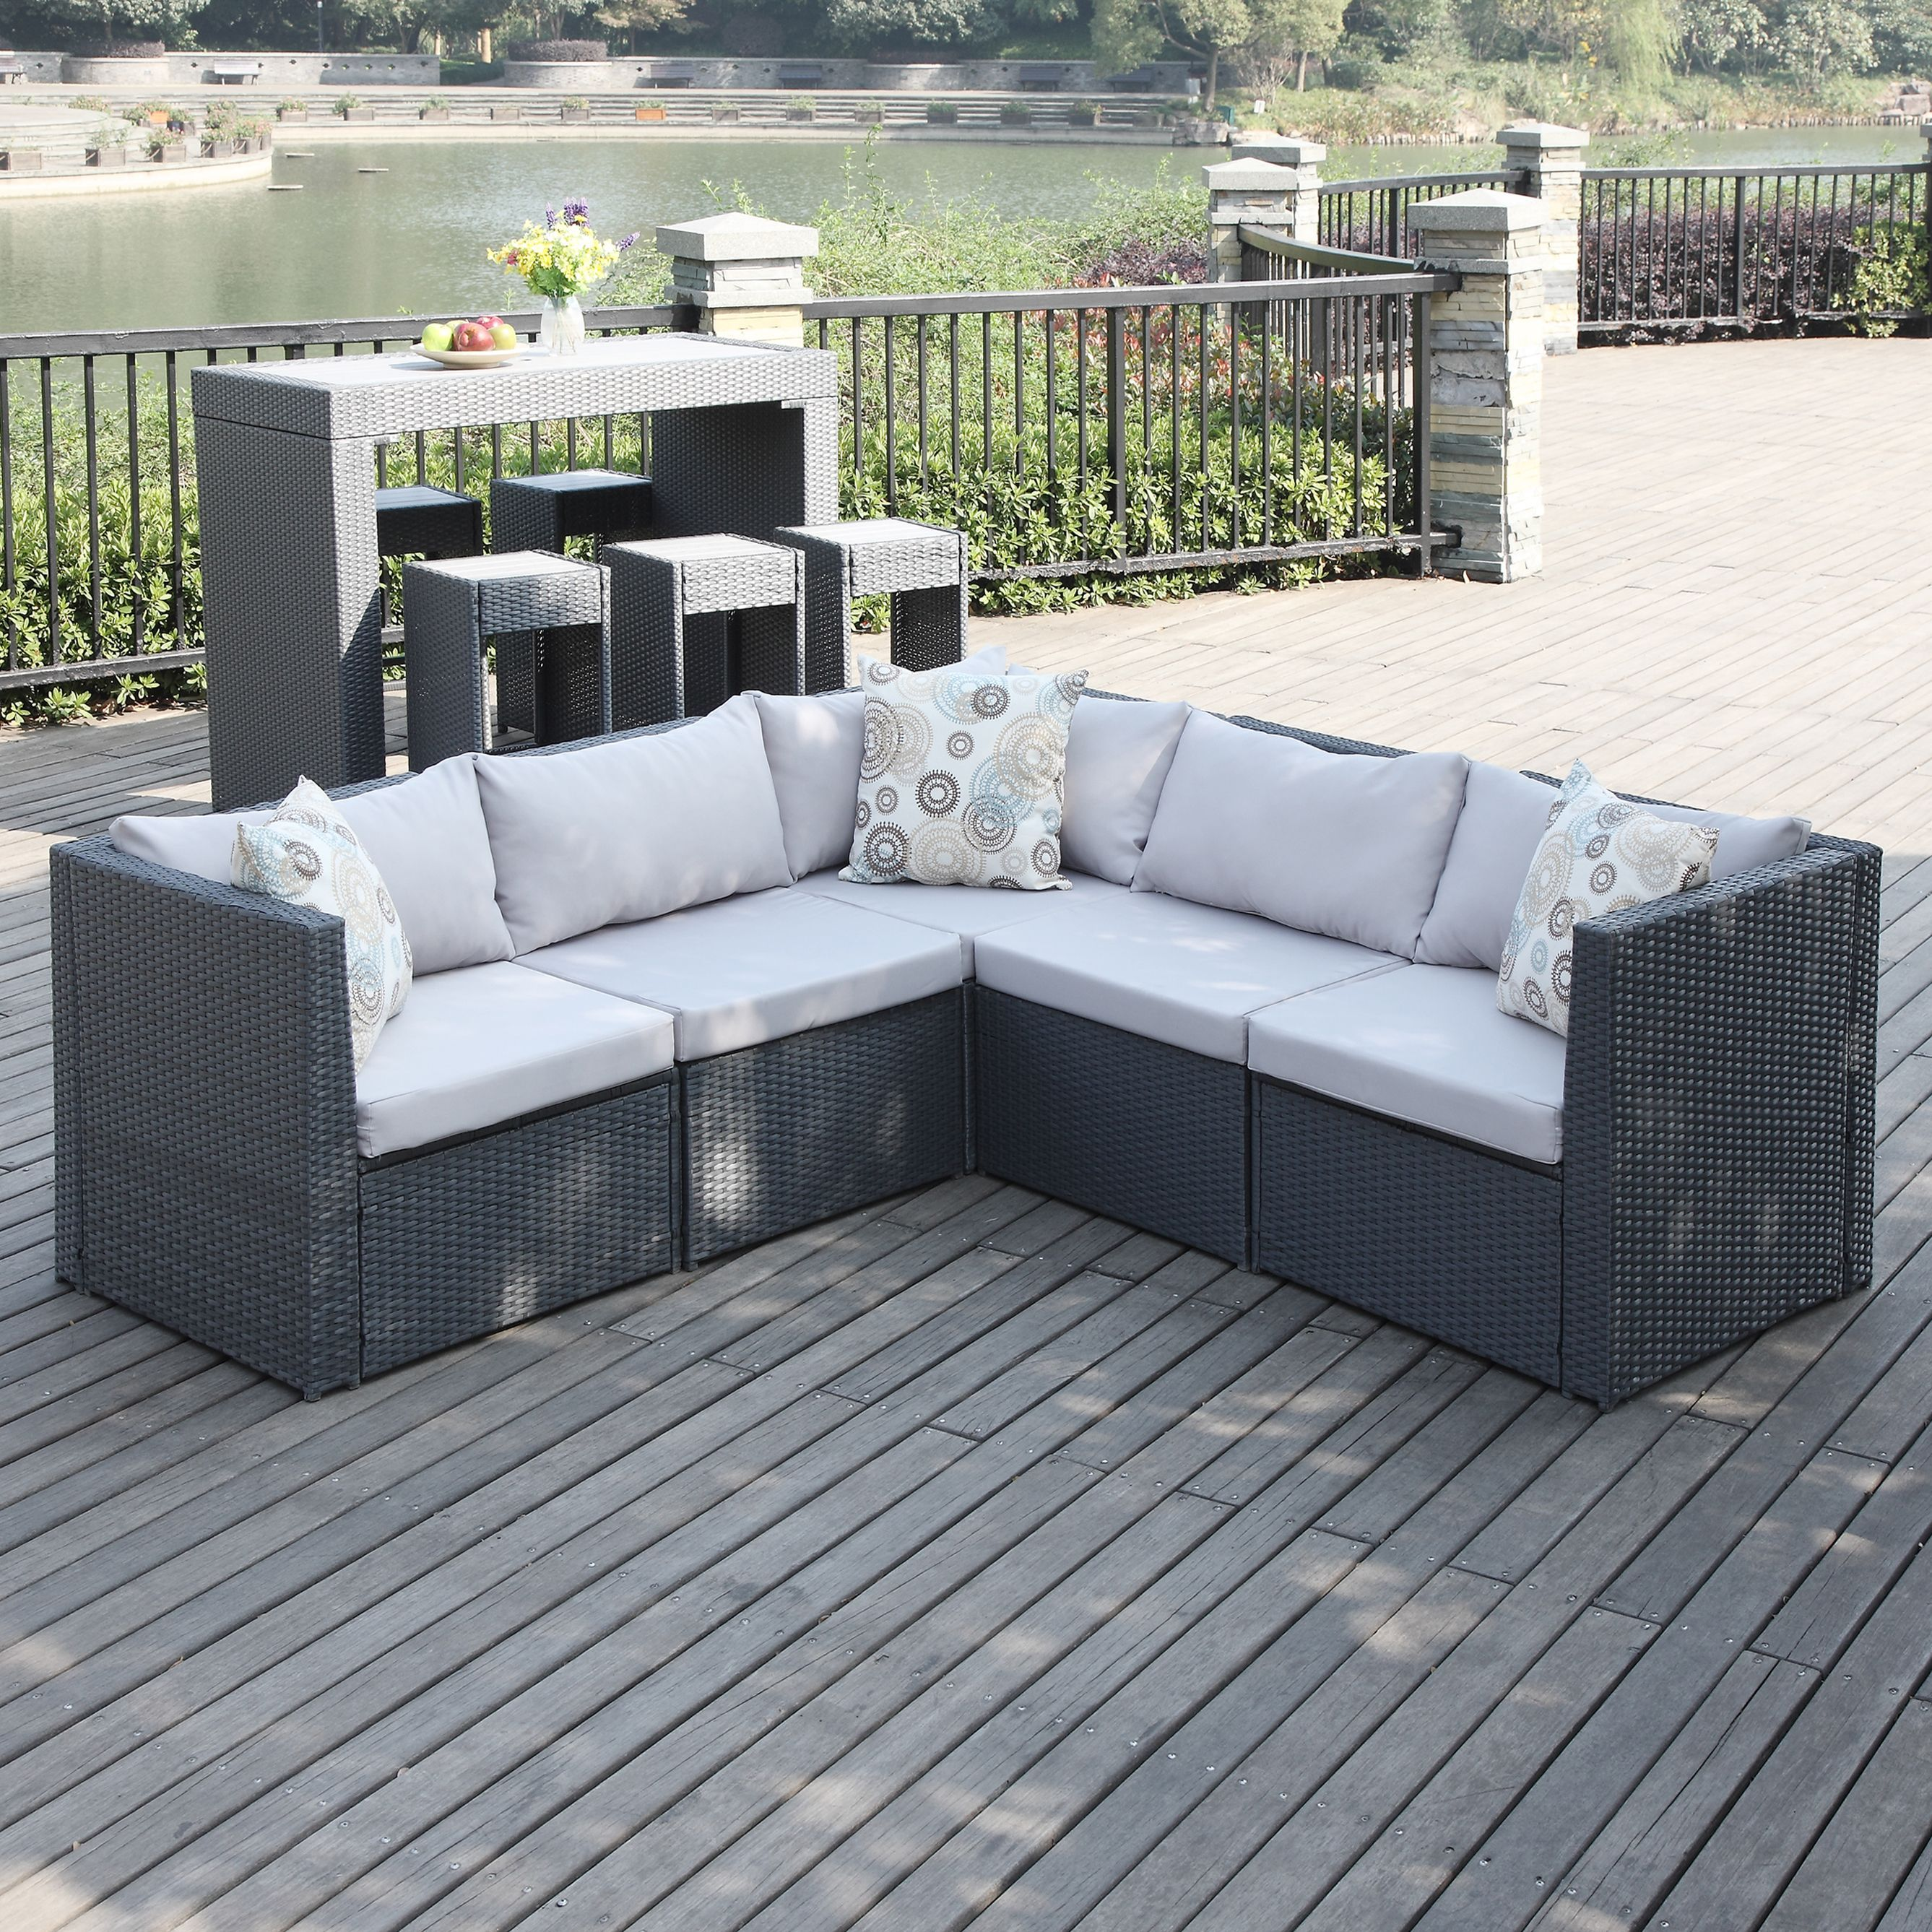 Awesome Portfolio Aldrich Grey Indoor/Outdoor Sectional Set   Overstock™ Shopping    Big Discounts On PORTFOLIO Sofas, Chairs U0026 Sectionals Part 15